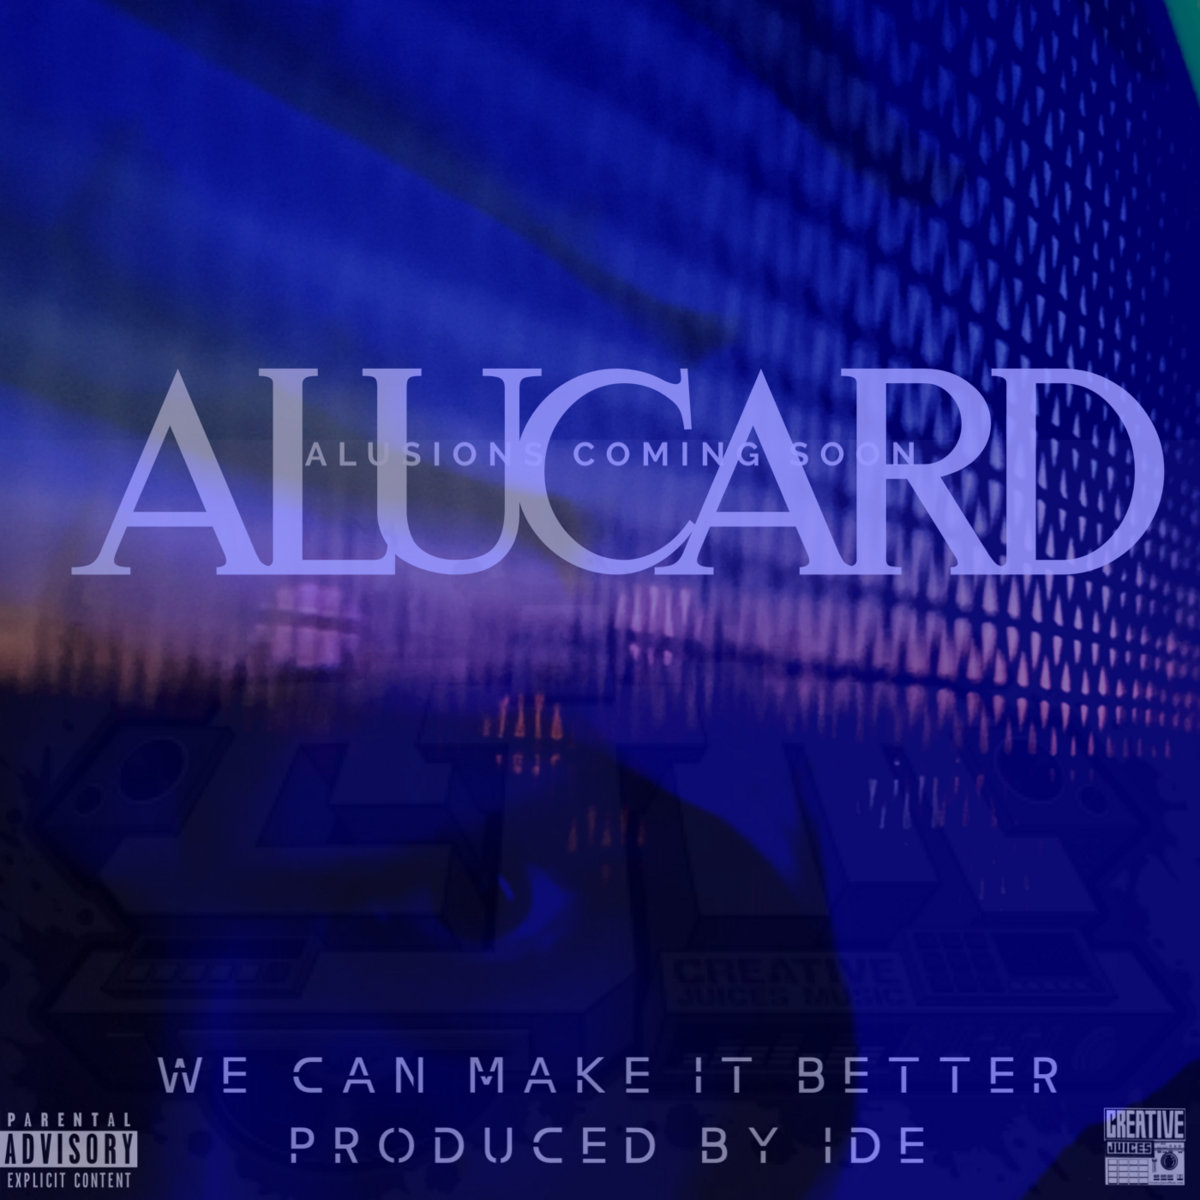 We_can_make_it_better_alucard_ide